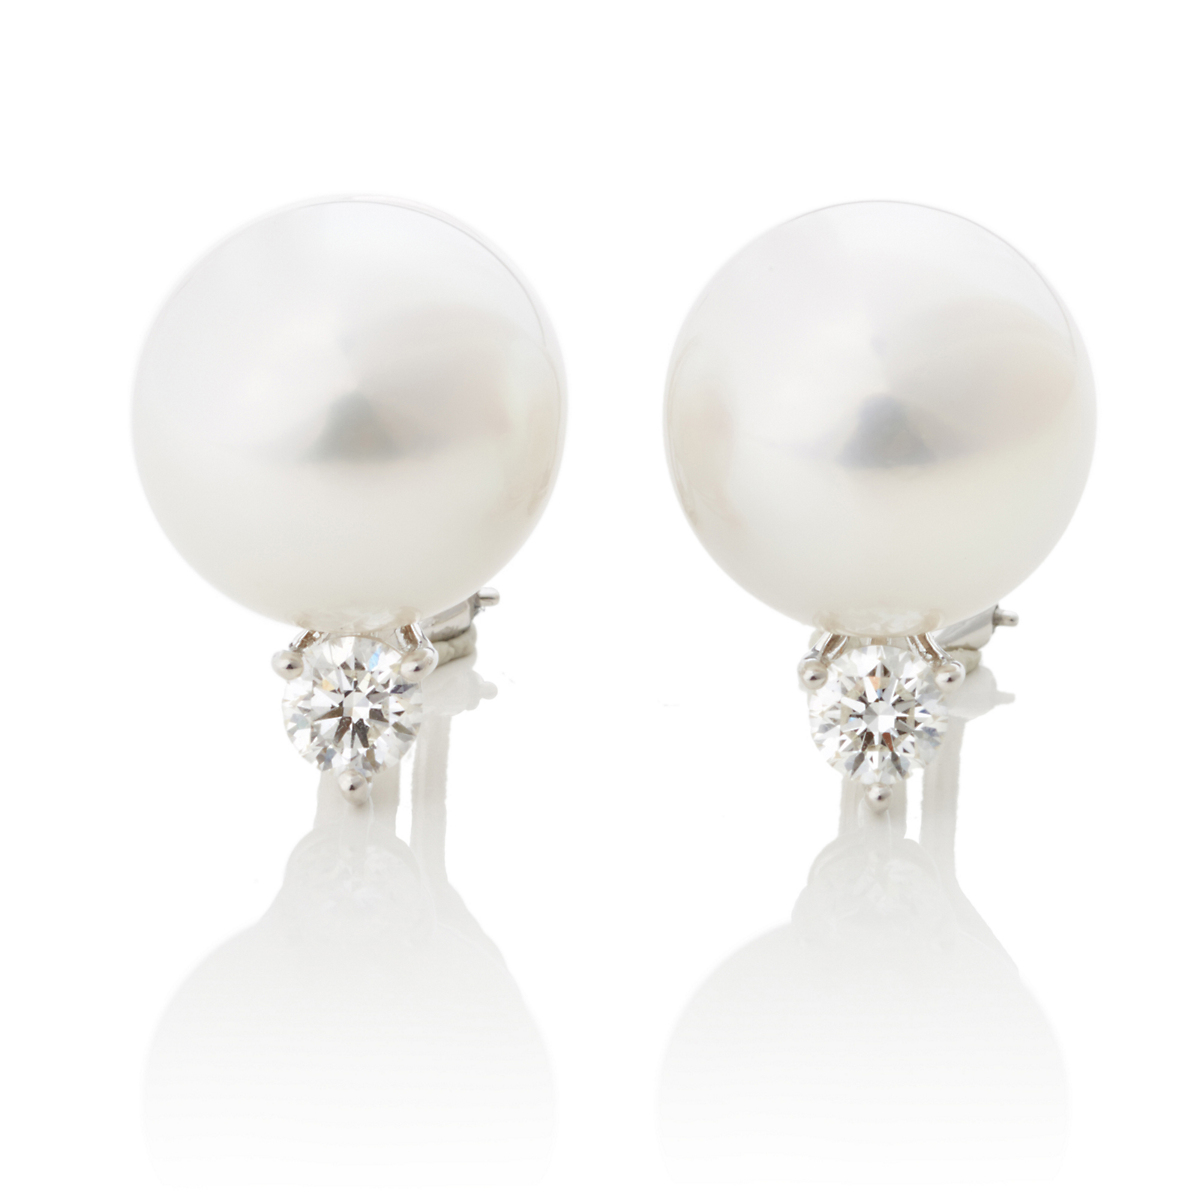 Gump's White South Sea Pearl Earrings With Brilliant Cut Diamonds